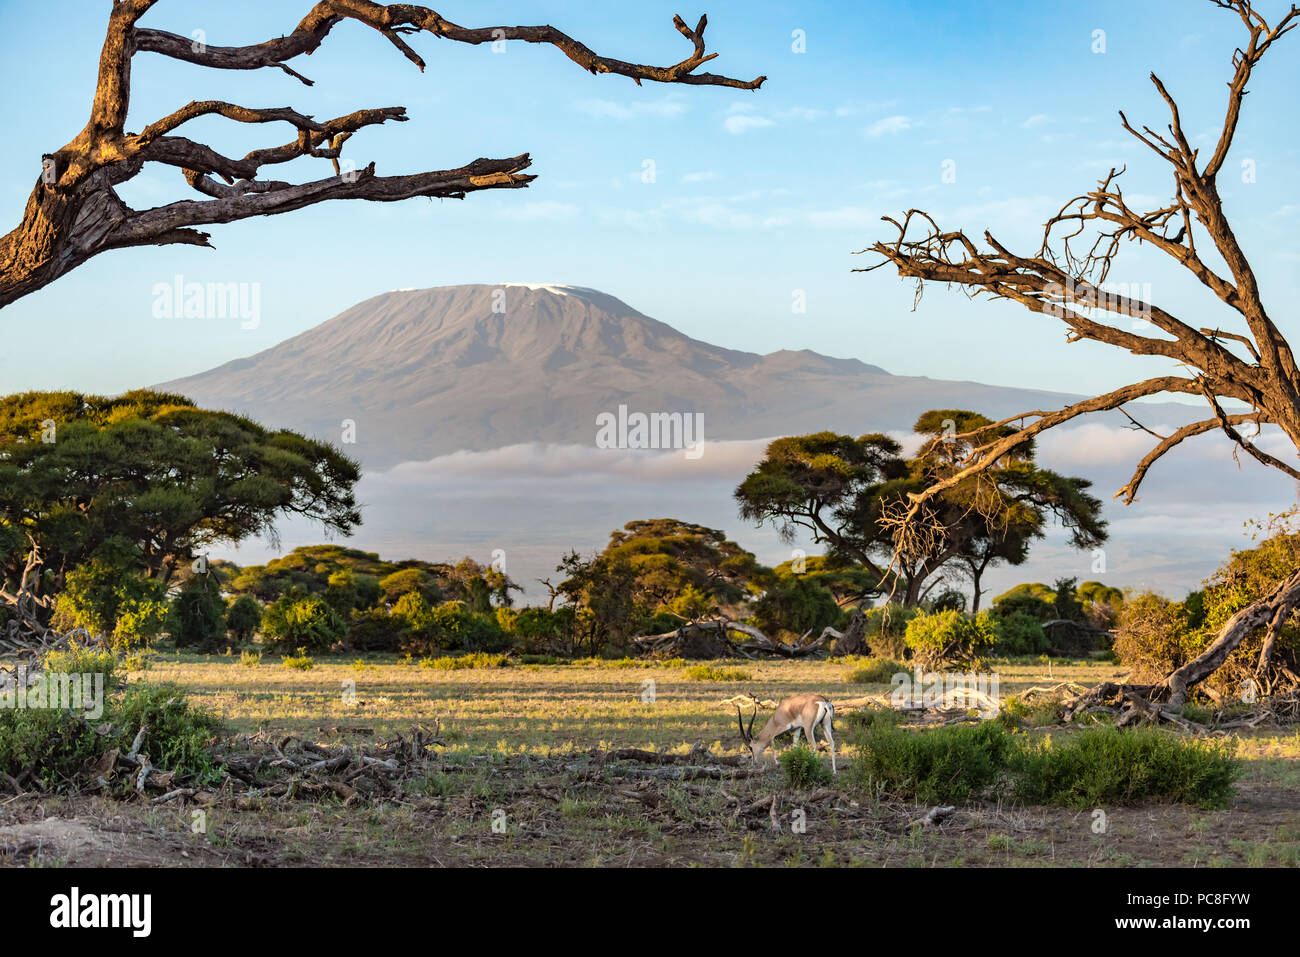 Mount Kilimanjaro in the Distance with an Antelope in the Foreground - Stock Image